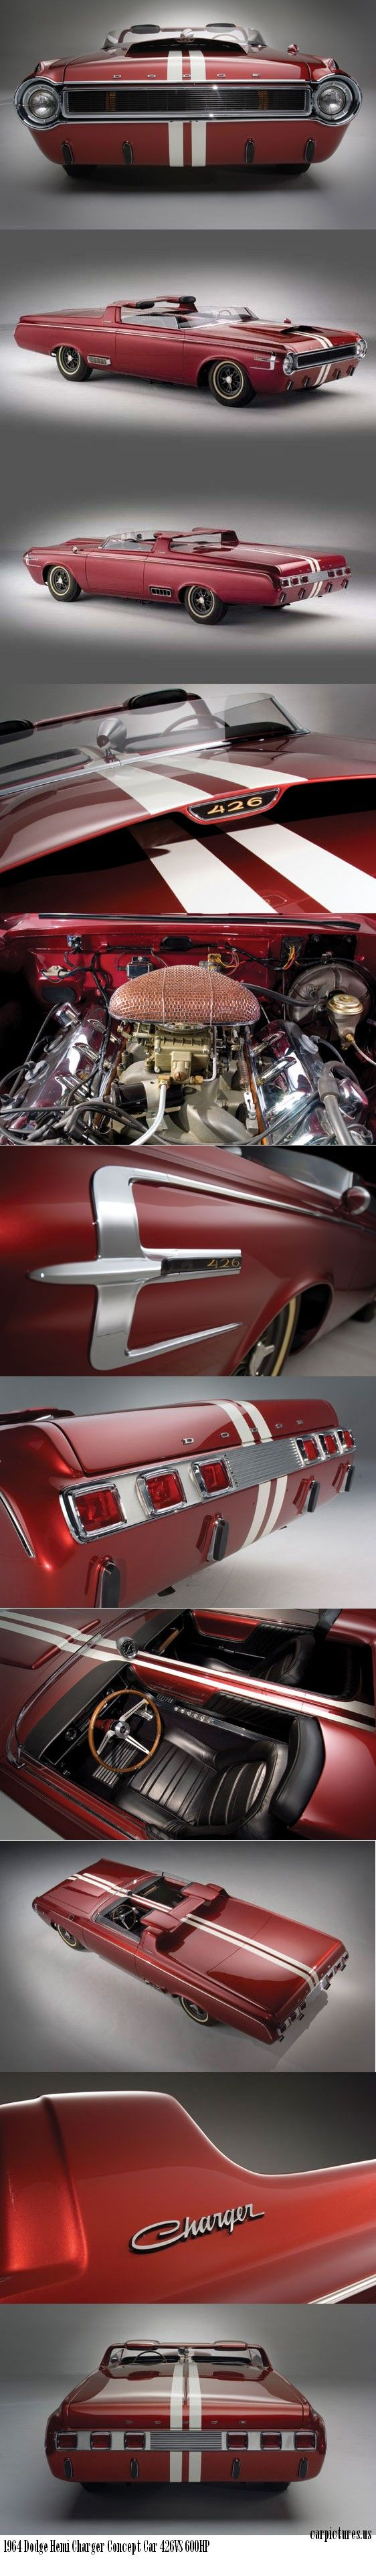 1964 Dodge Hemi Charger Concept Car. 426 Hemi, 600HP. | Repinned by www.BlickeDeeler.de